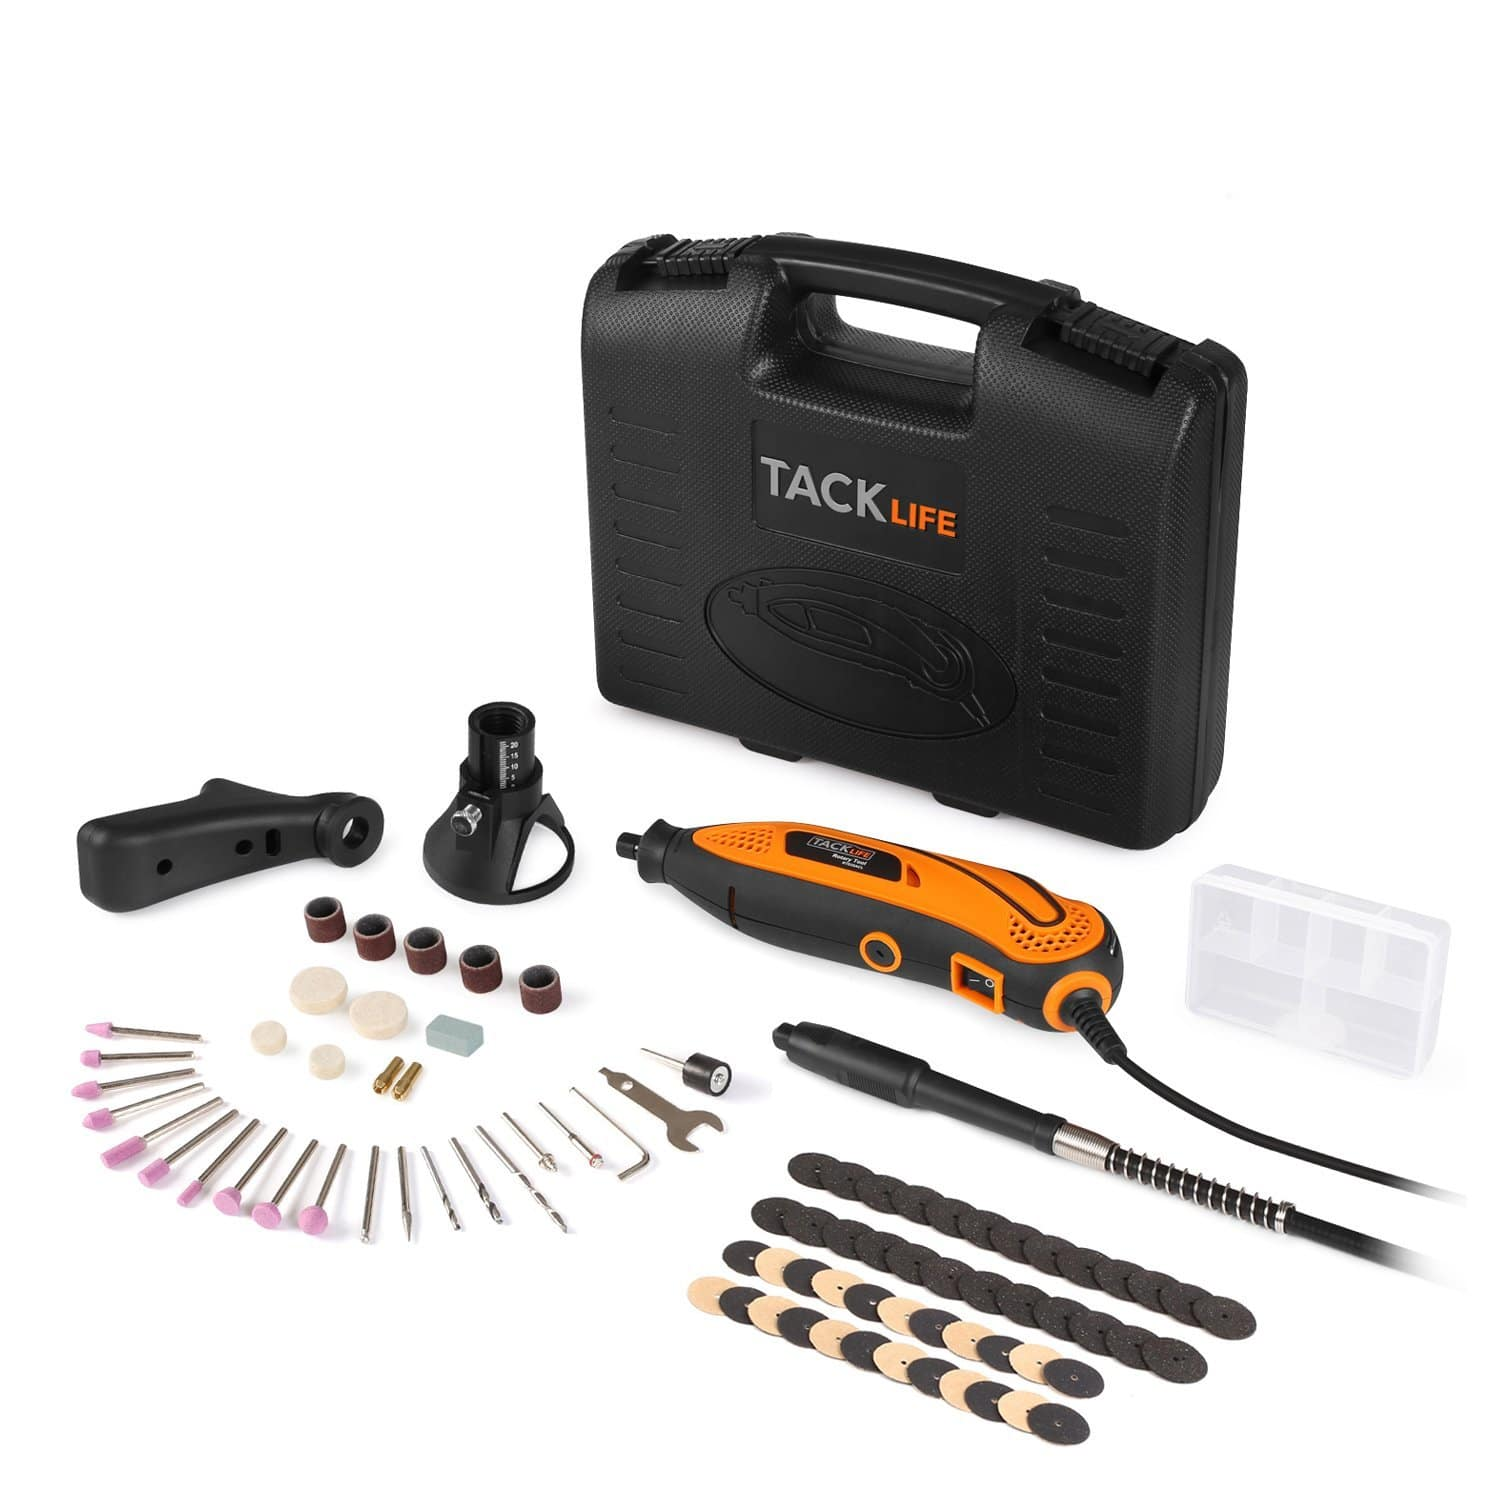 Tacklife Rotary Tool Kit with 80 Accessories and 3 Attachments $28 Lightning Deal @ Amazon